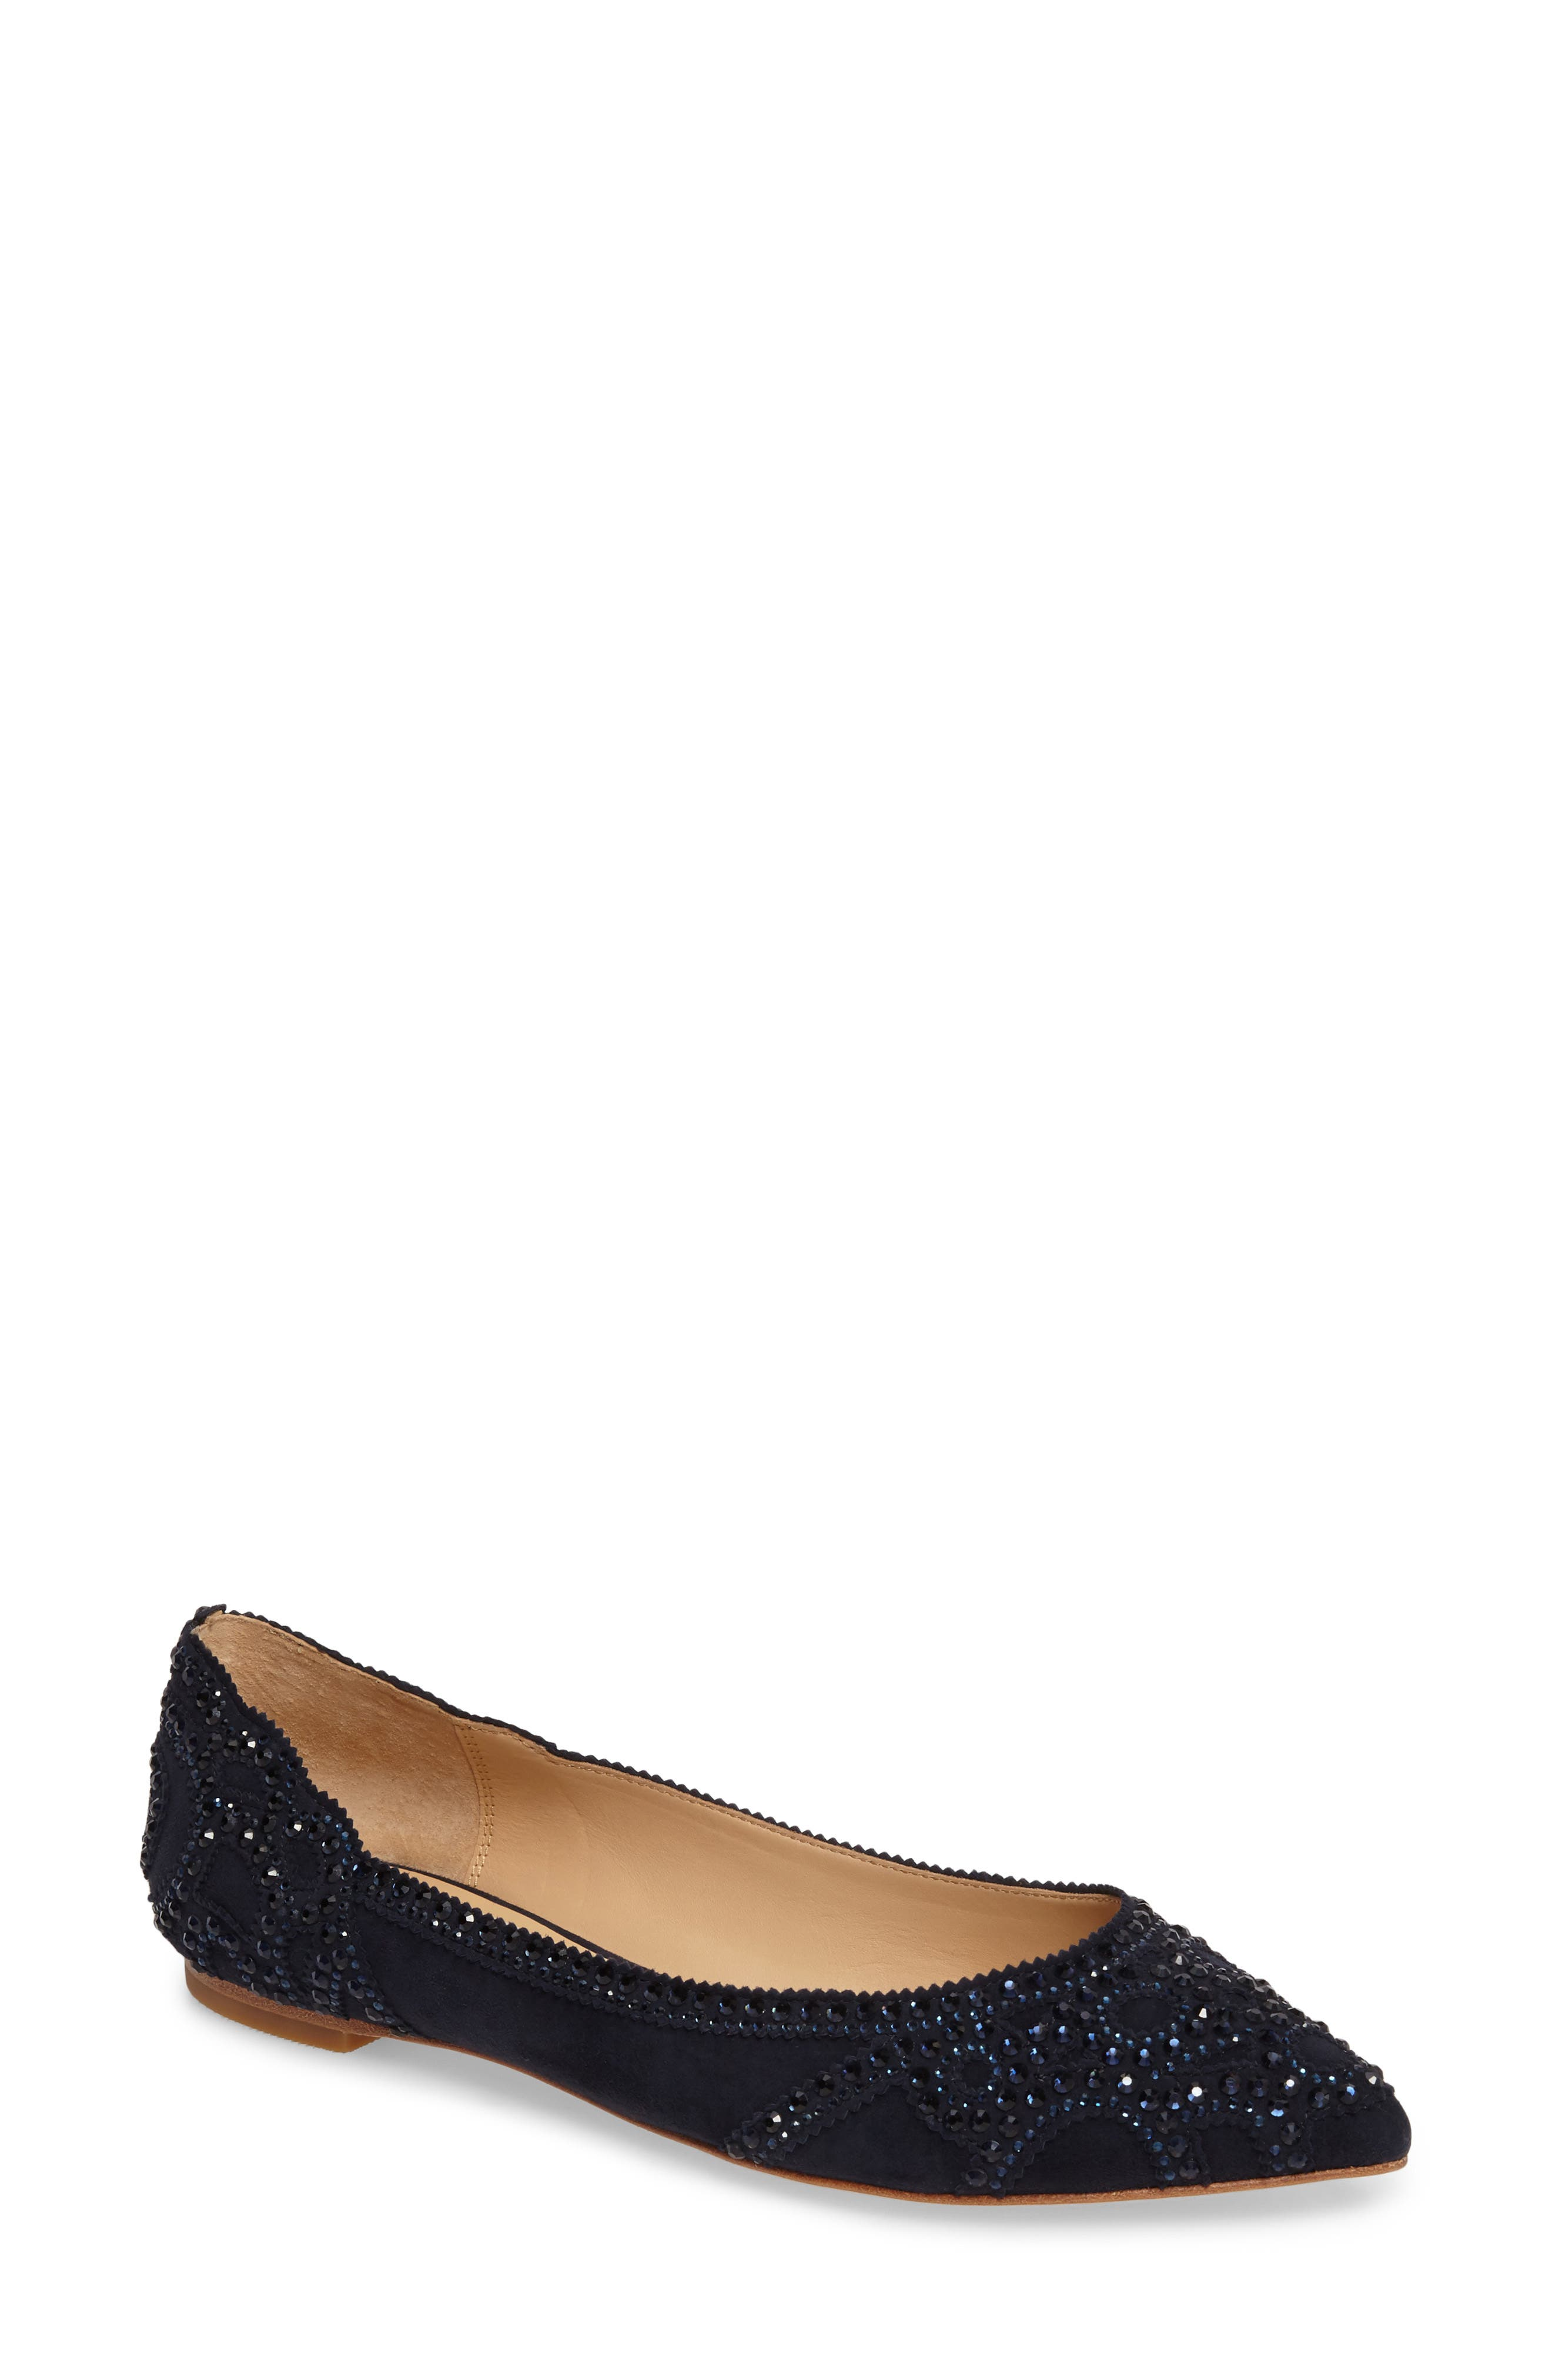 Gigi Crystal Pointy Toe Flat,                         Main,                         color, Midnight Suede